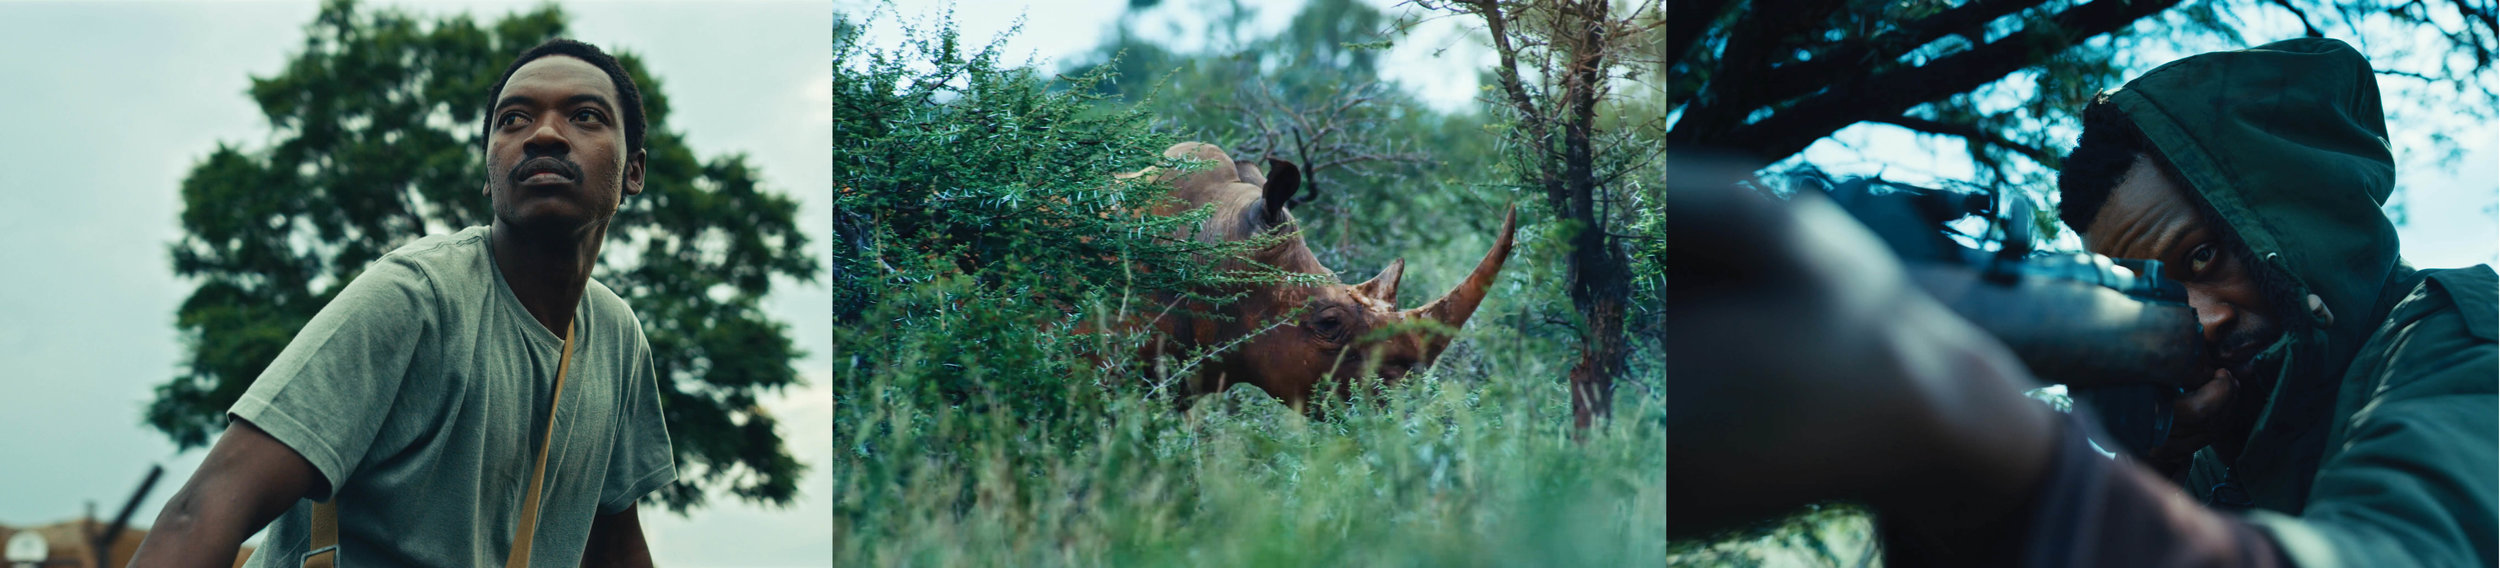 sides of a horn -